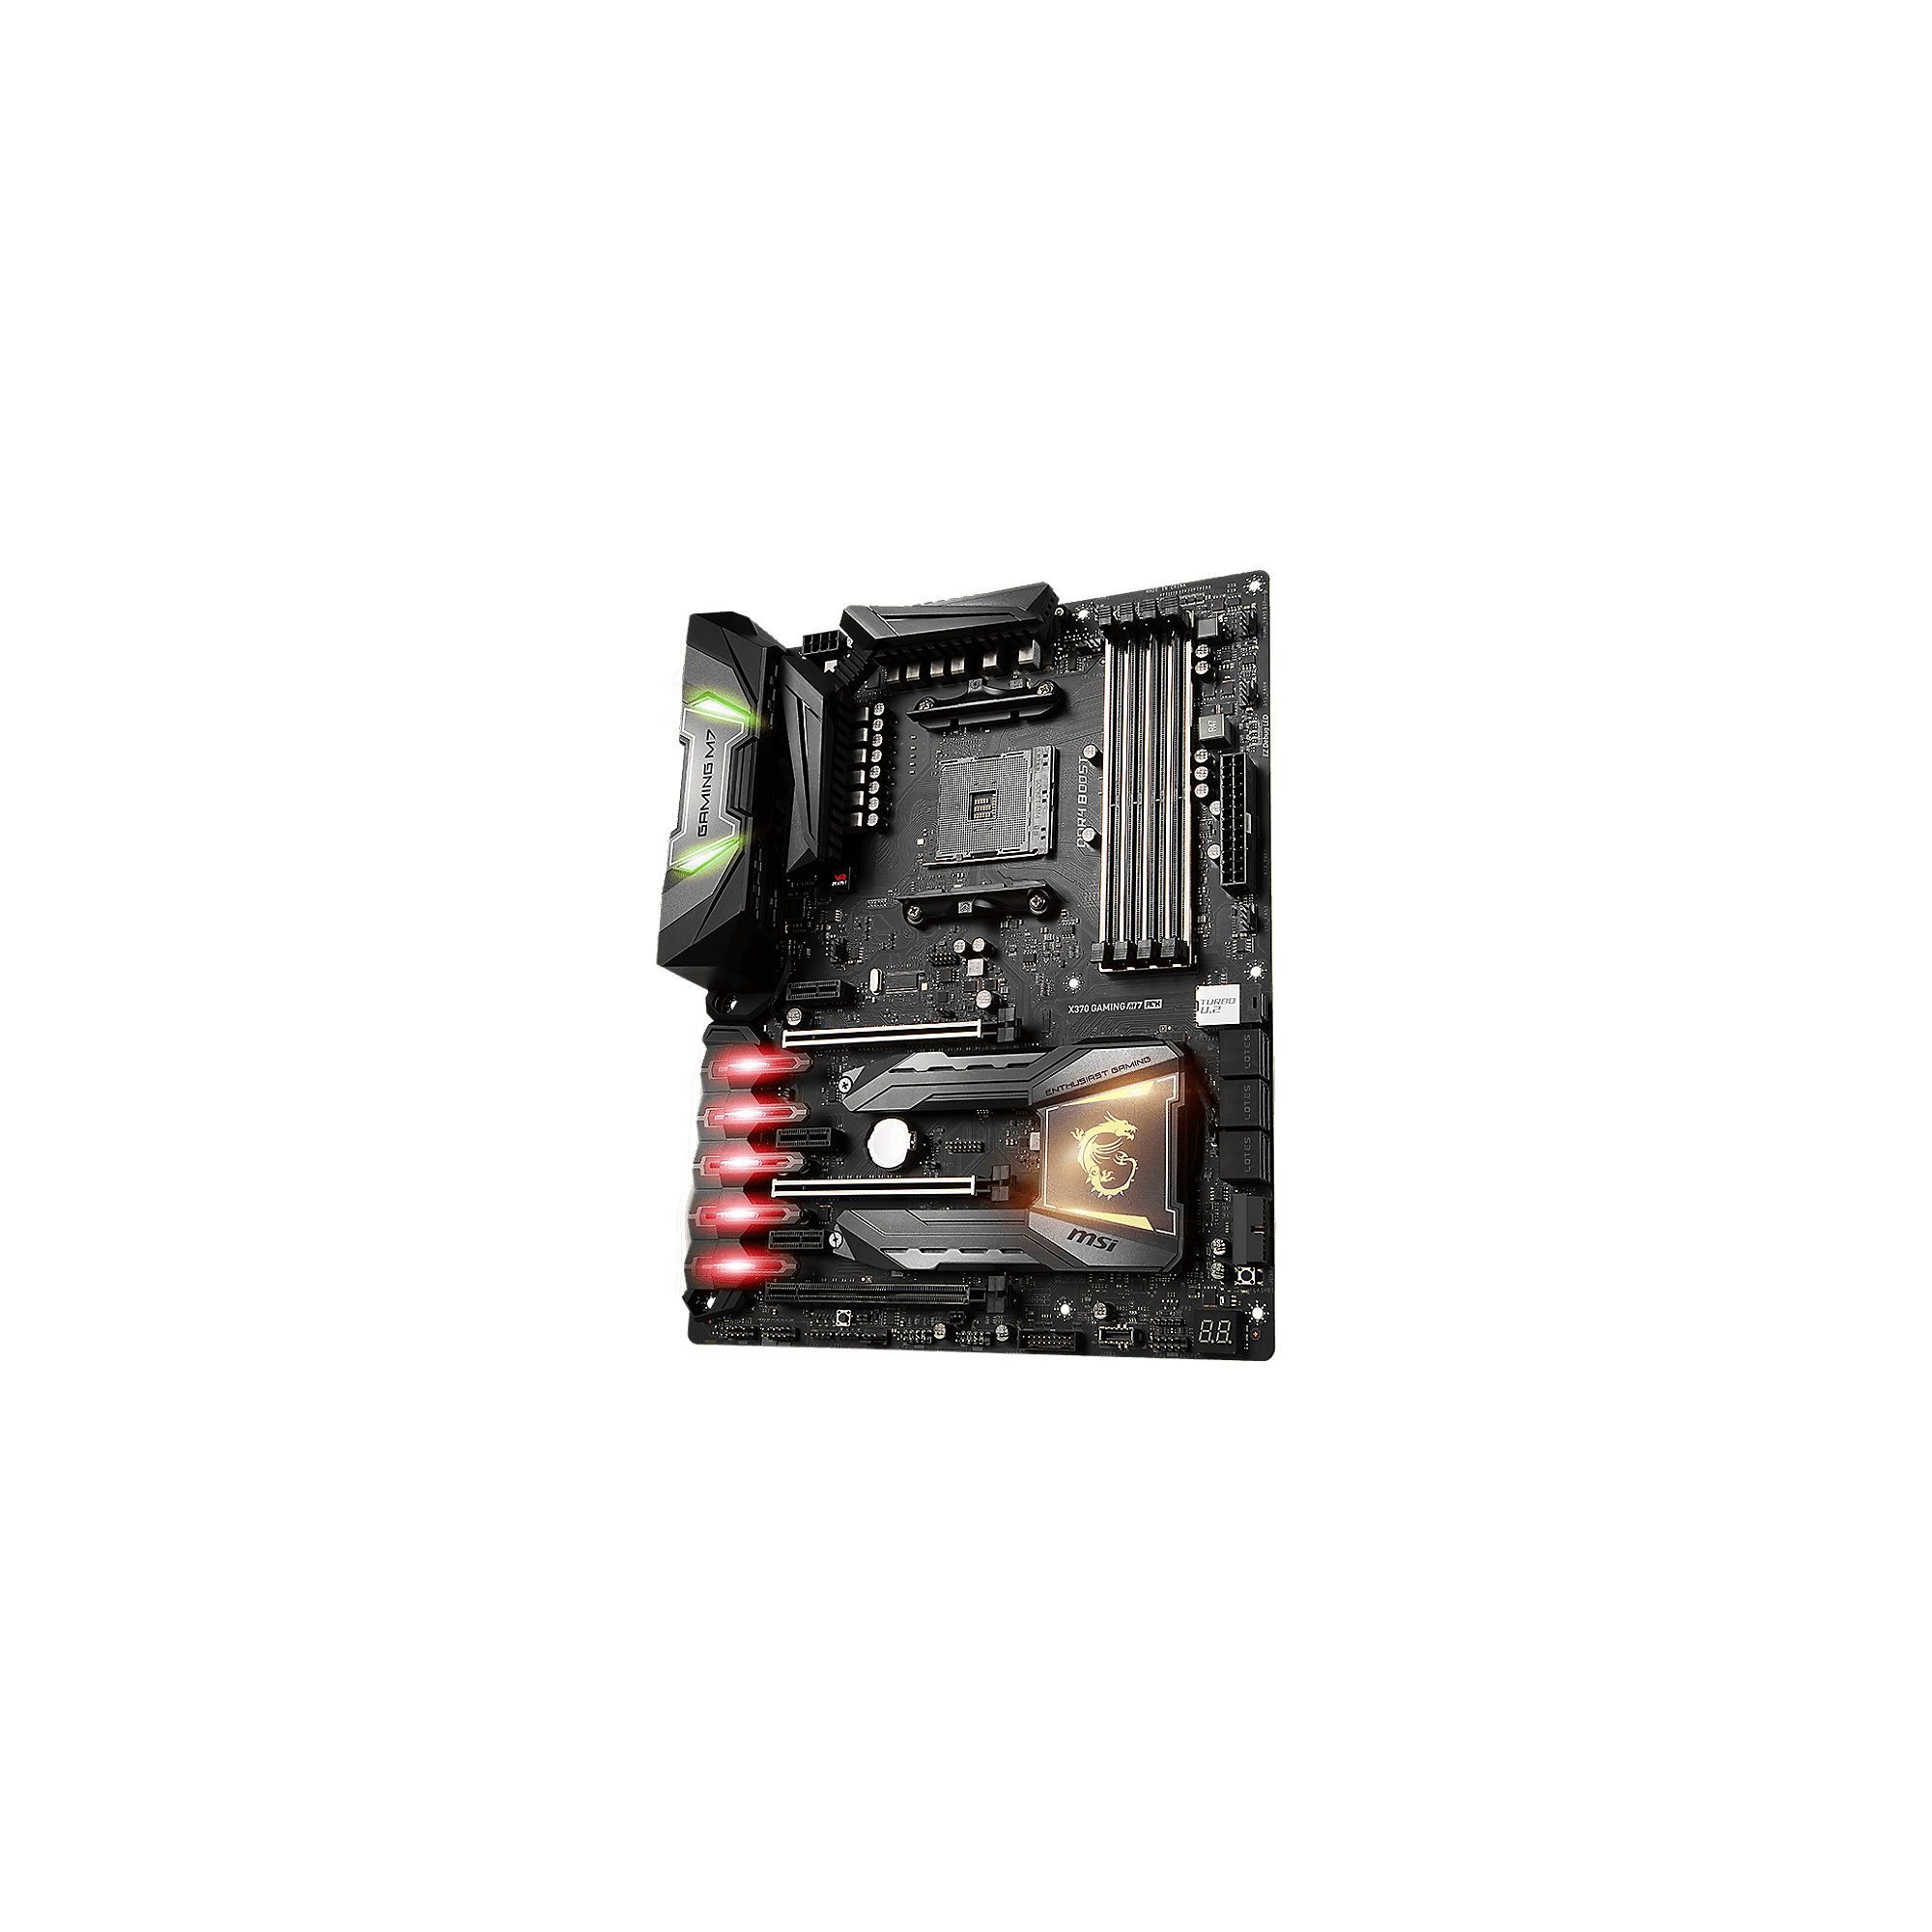 MSI MSI X370 Gaming M7 ACK WIFI/BT/M.2/USB3.1 ATX Mainboard Sockel AM4